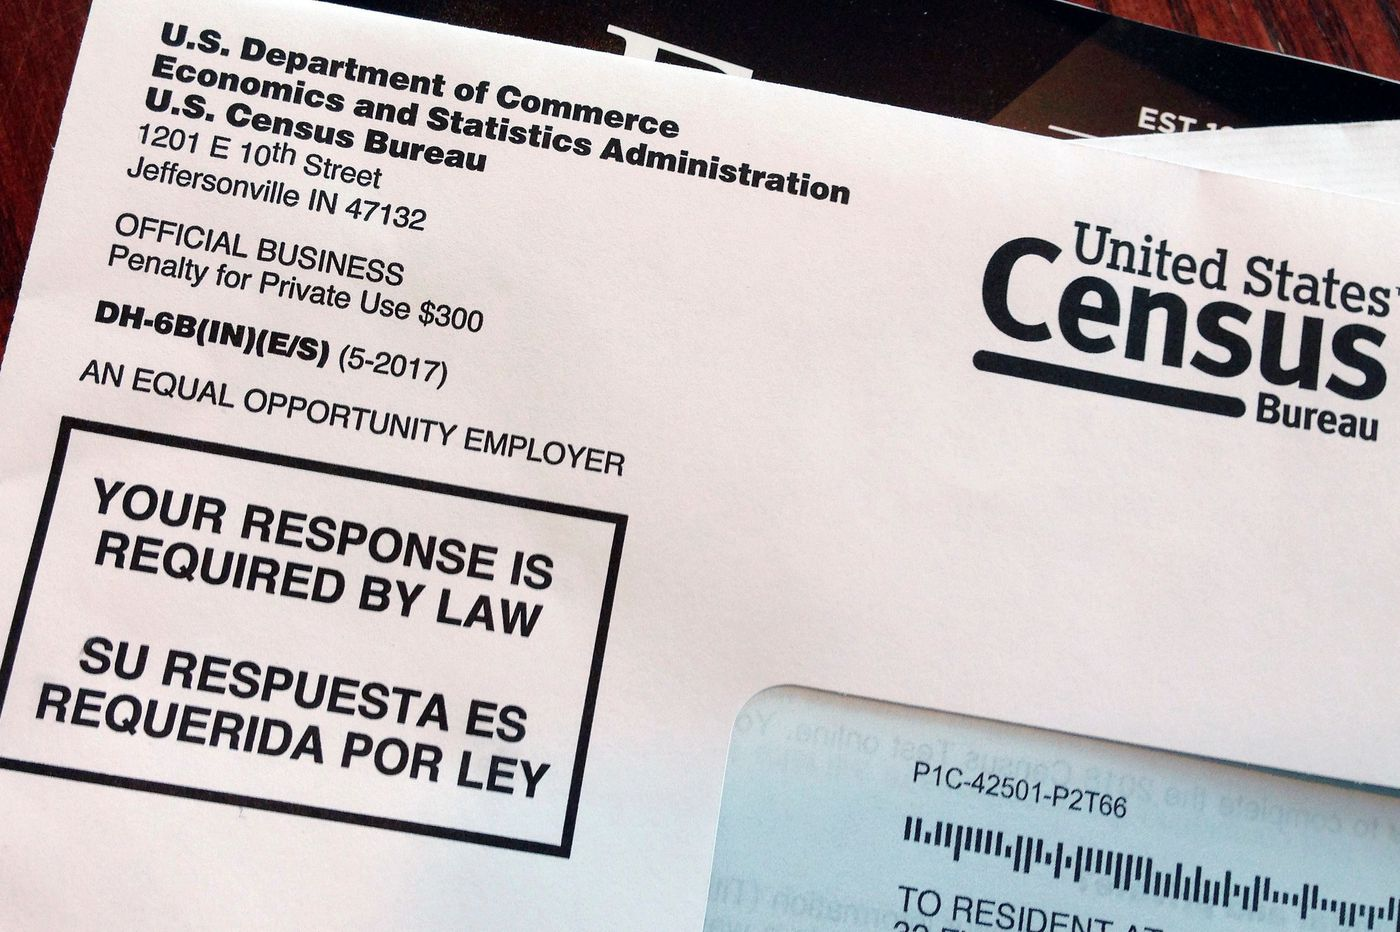 Trump abandons effort to put citizenship question on census, will pursue other ways to get data